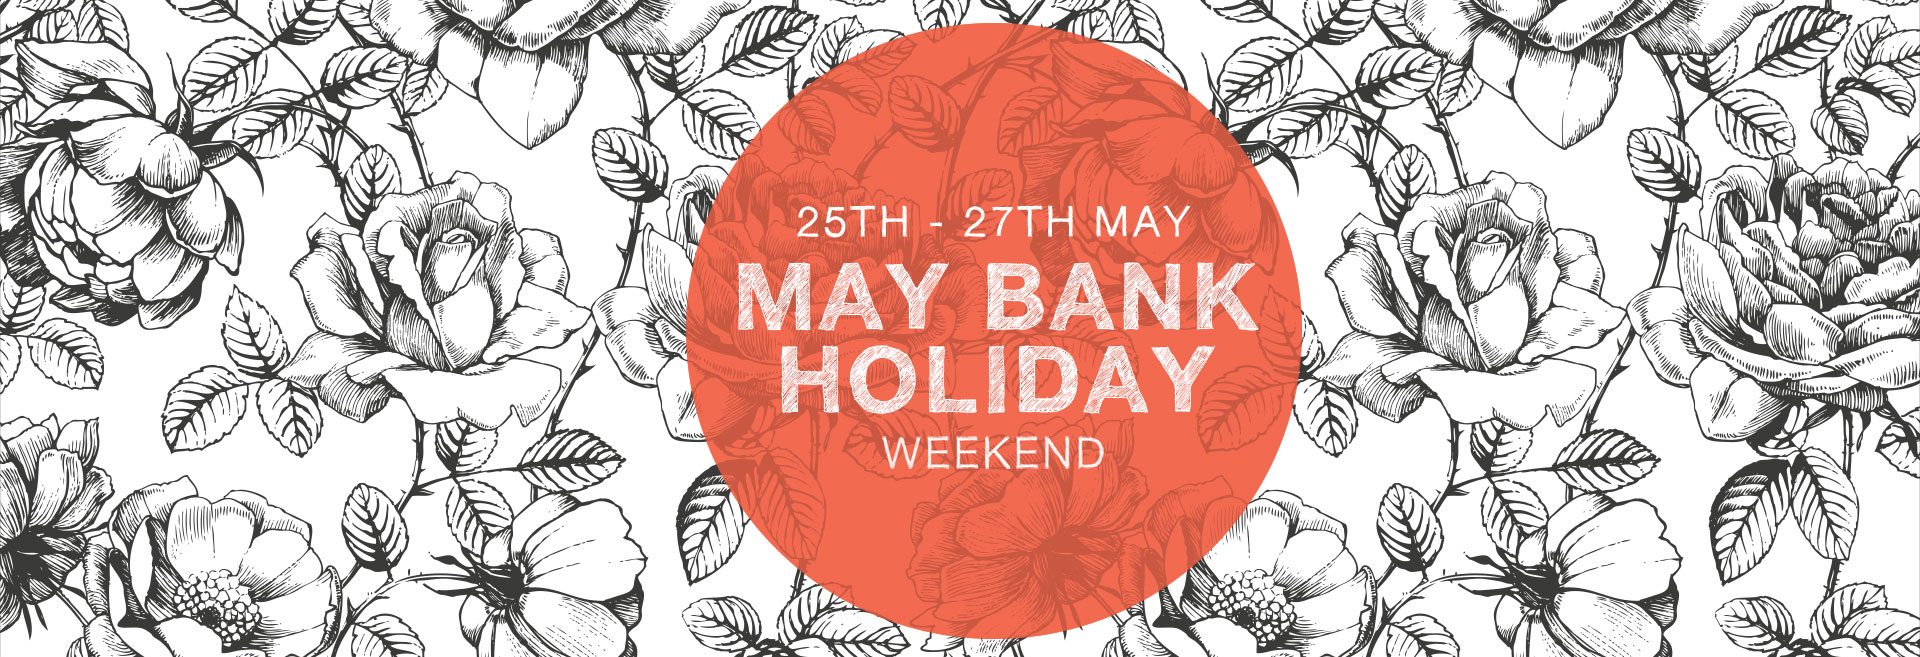 May Bank Holiday at The Castle